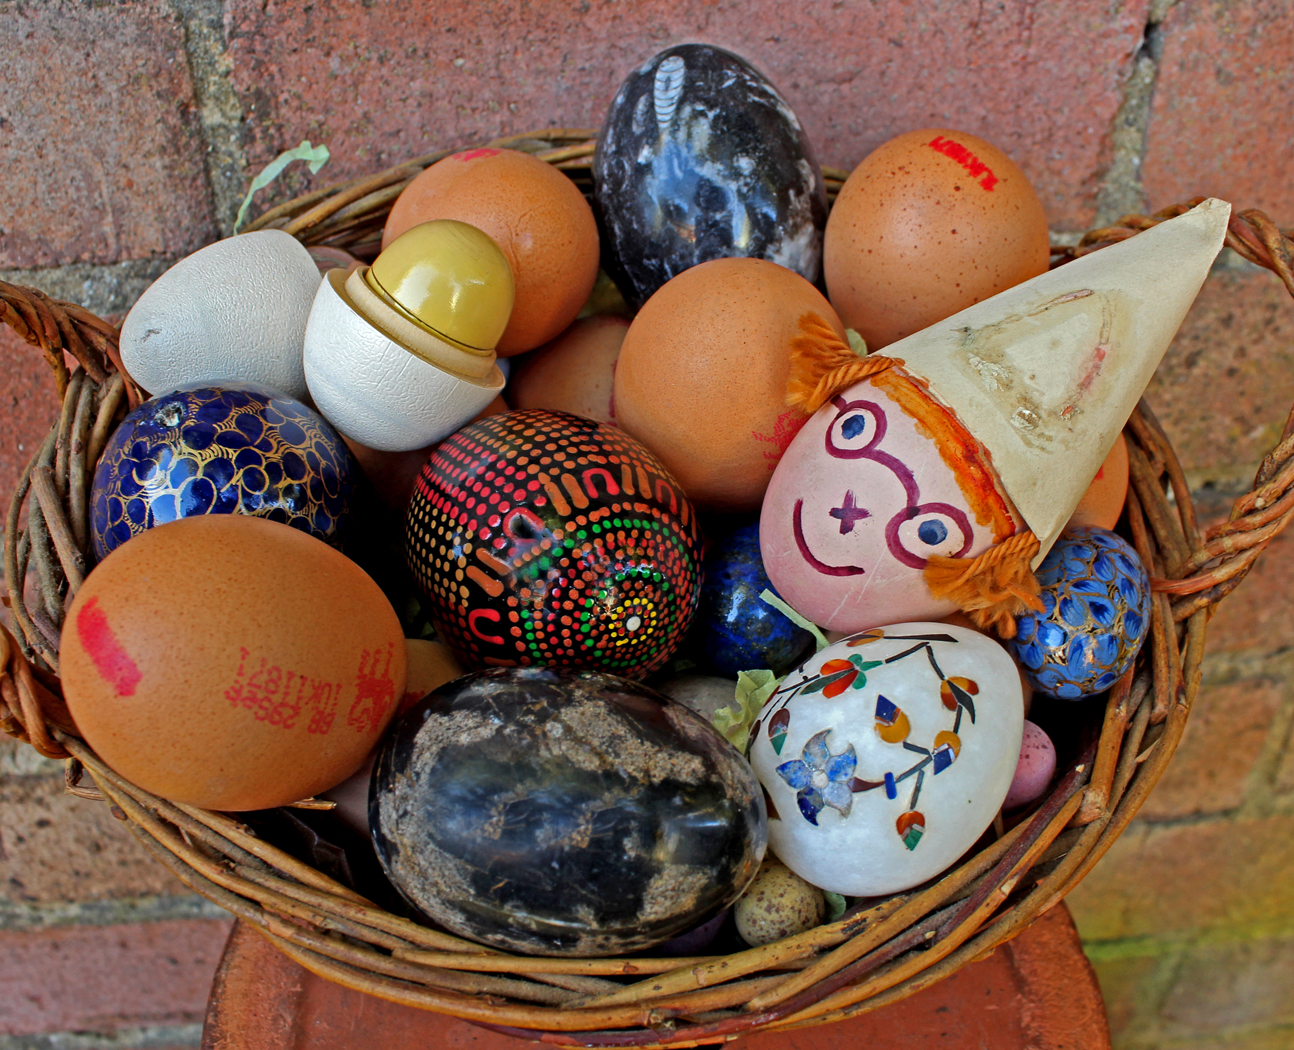 EGGS ALL IN ONE BASKET by Sue Avey